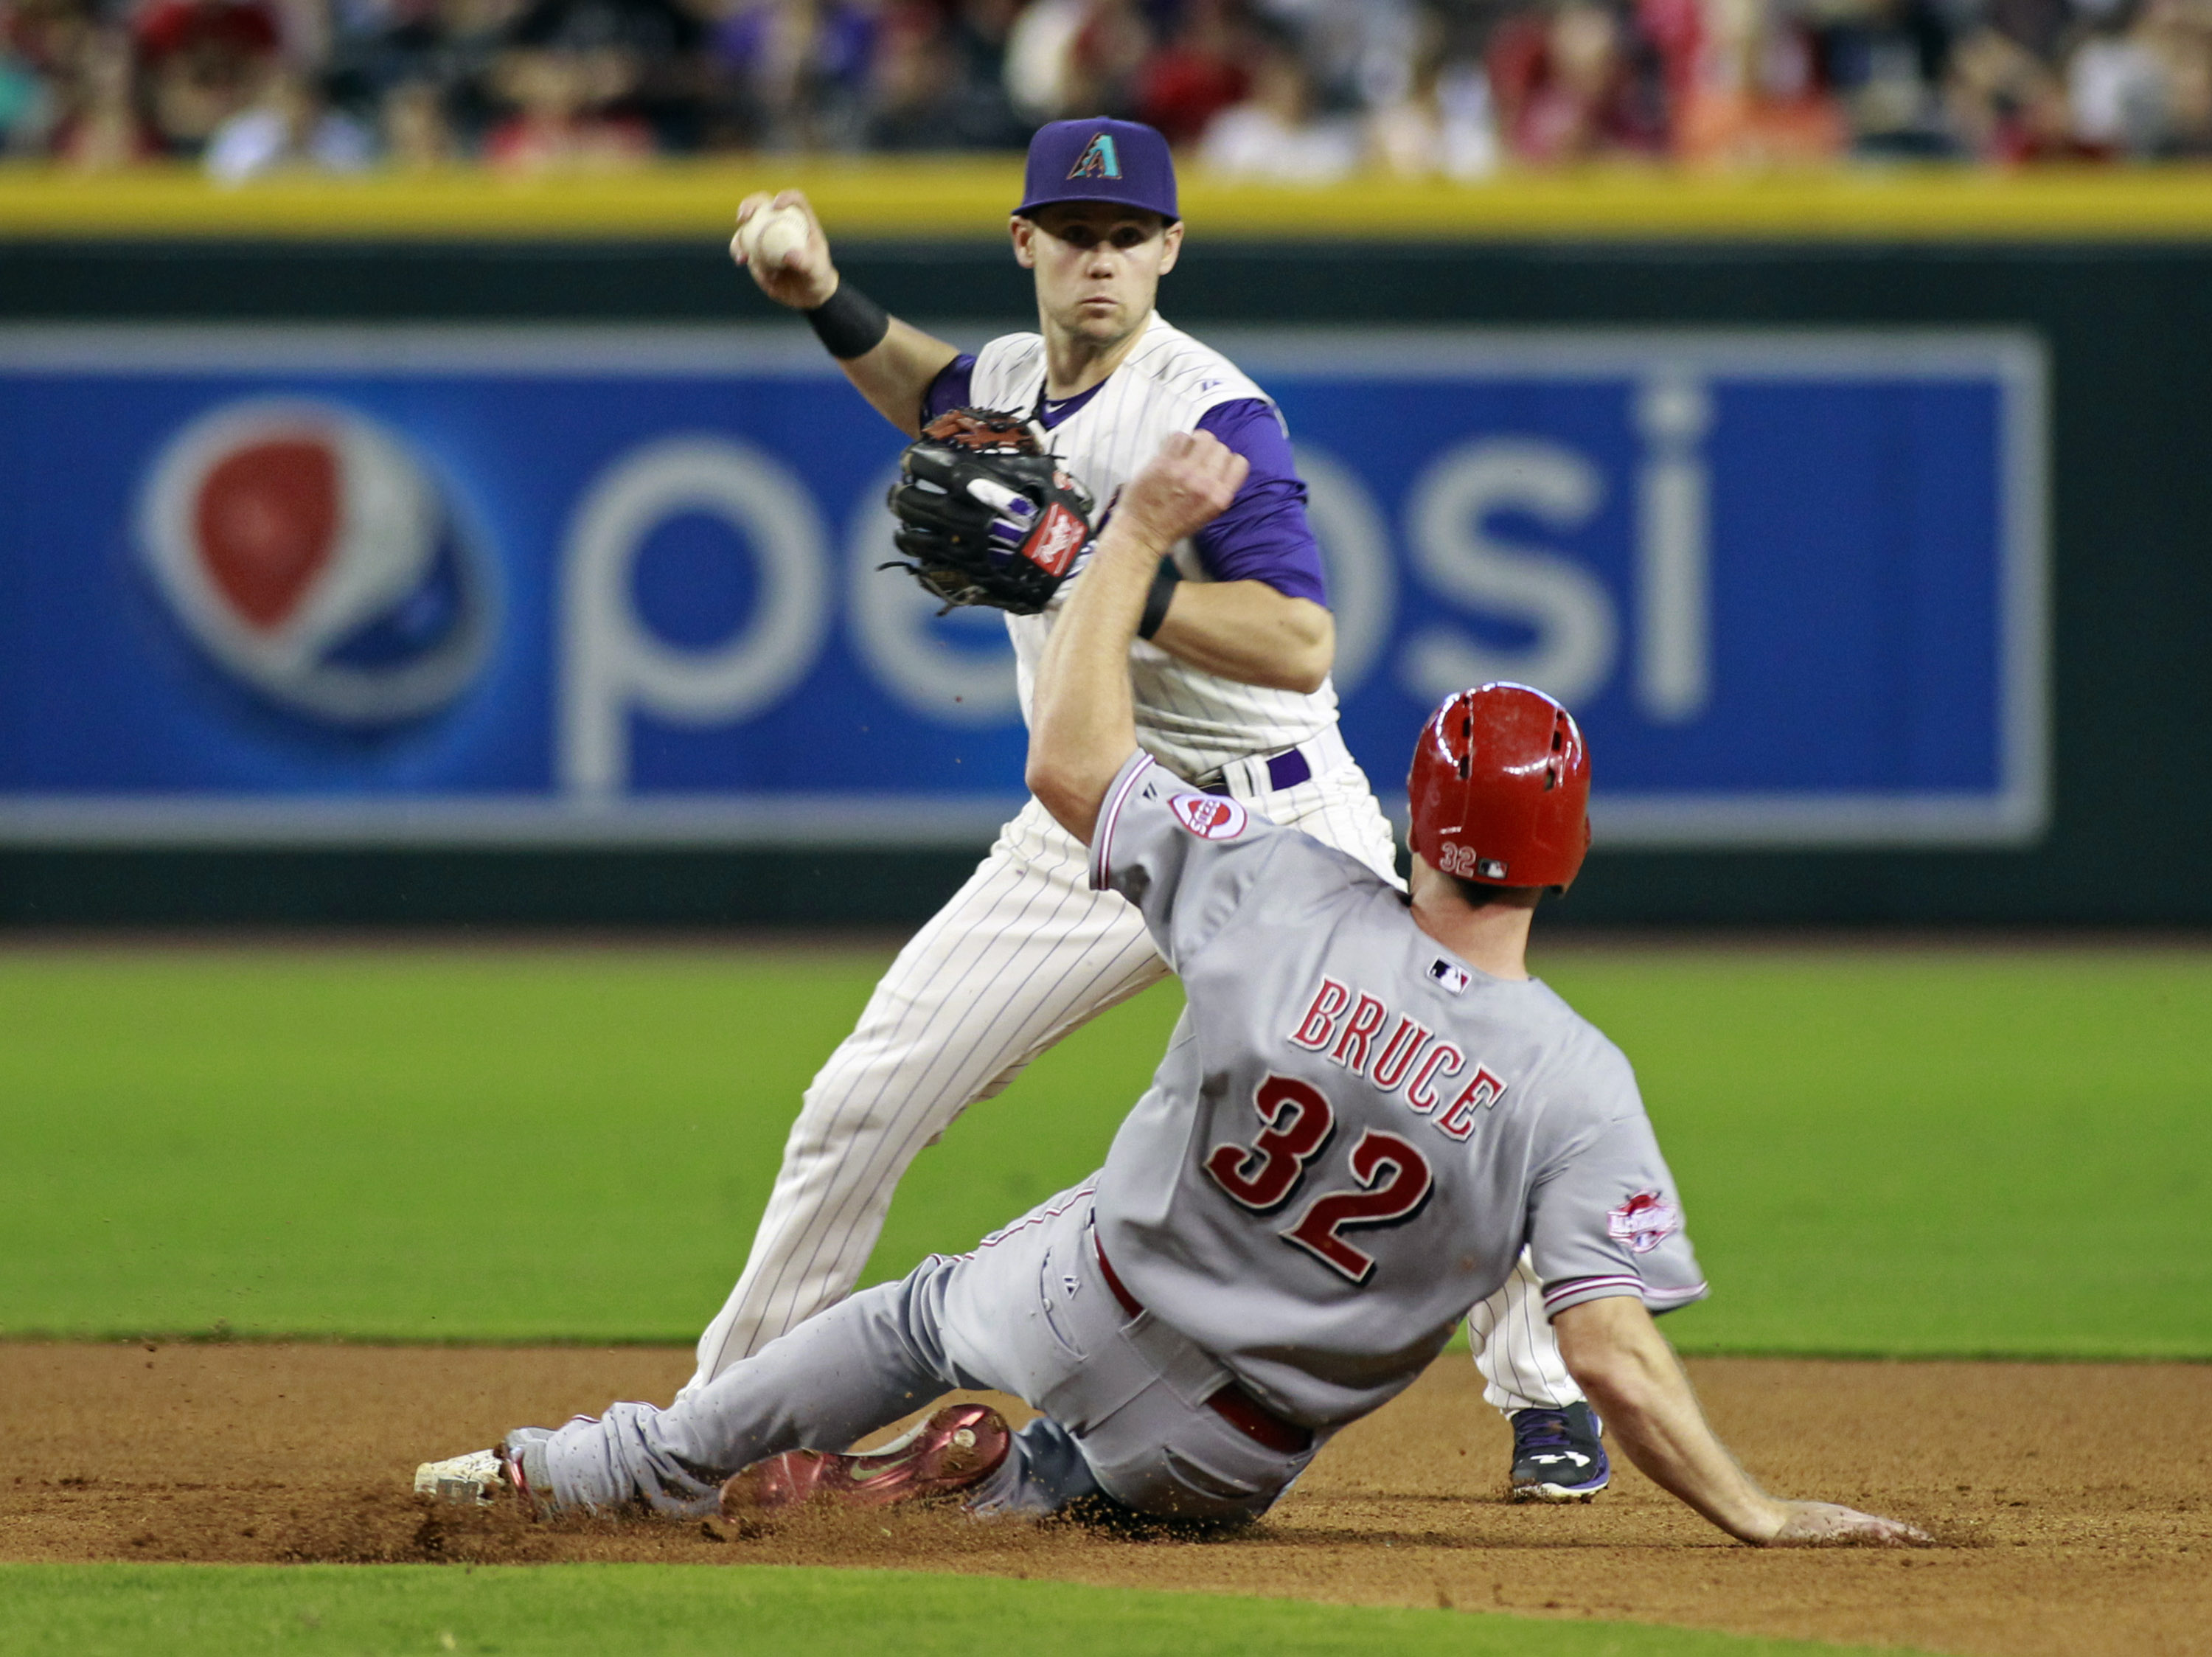 Arizona Diamondbacks' Chris Owings, top, looks to complete a double play as Cincinnati Reds' Jay Bruce slides into second during the fourth inning of a baseball game, Sunday, Aug. 9, 2015, in Phoenix. Owings was unable to complete the double play. (AP Pho